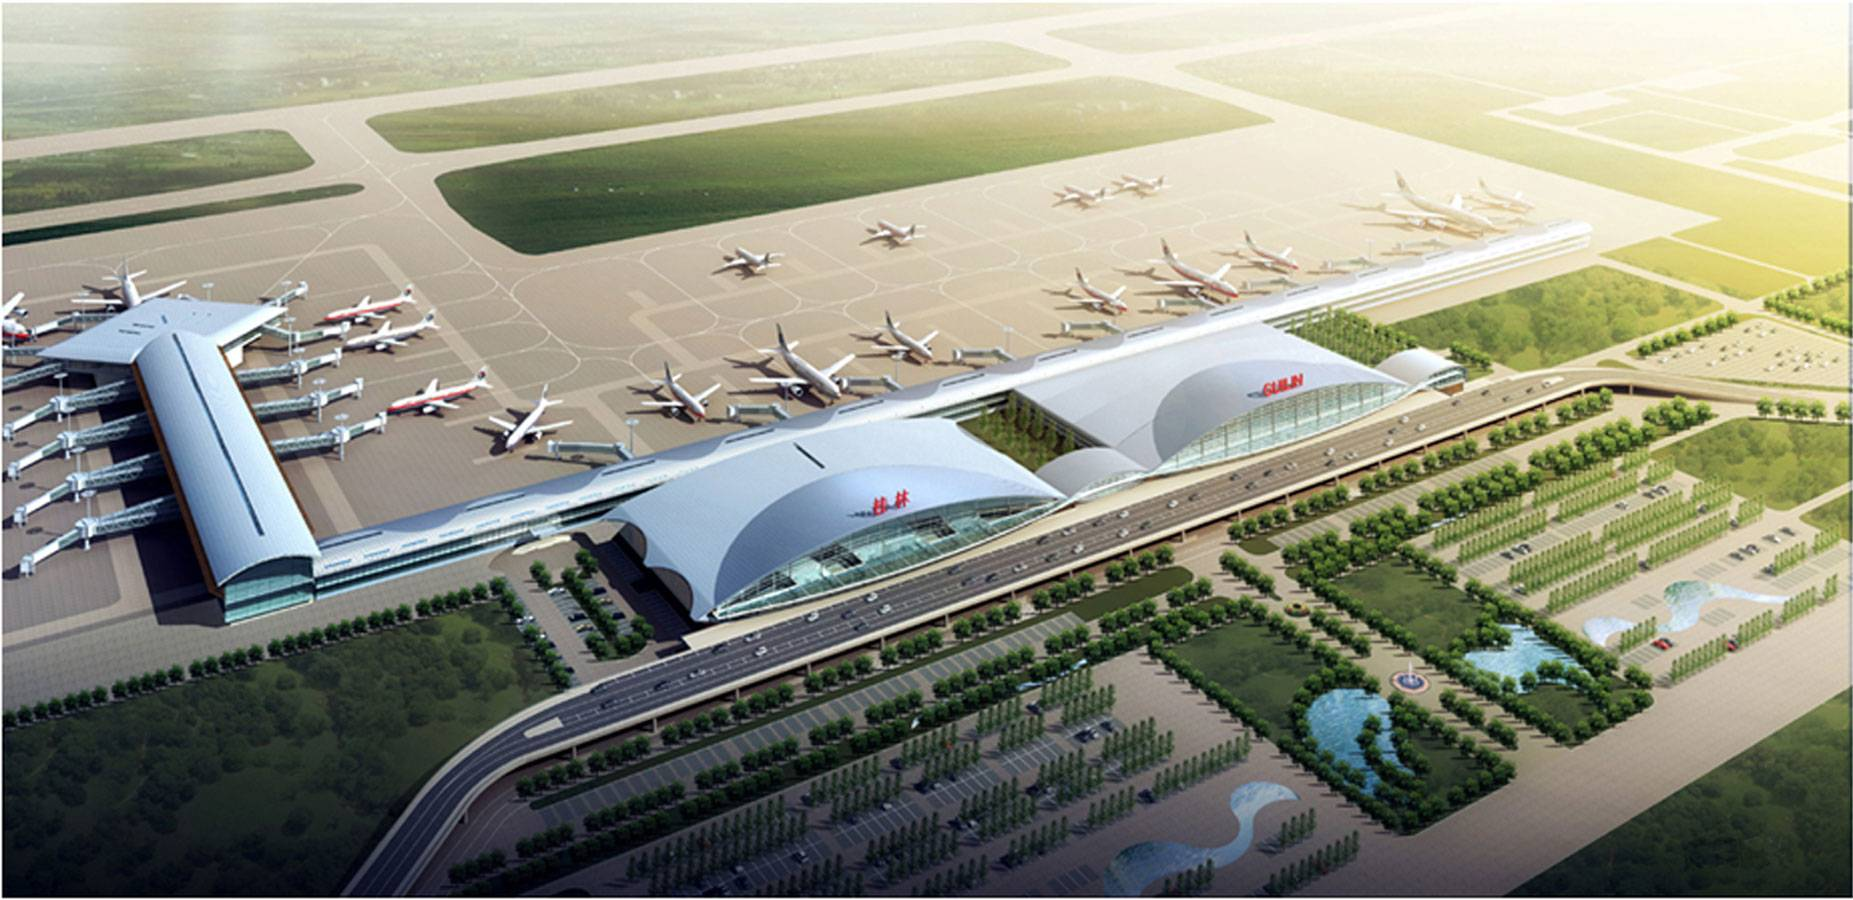 guilin-int-airport-competition-china-place-1-by-nir-sivan-entrance